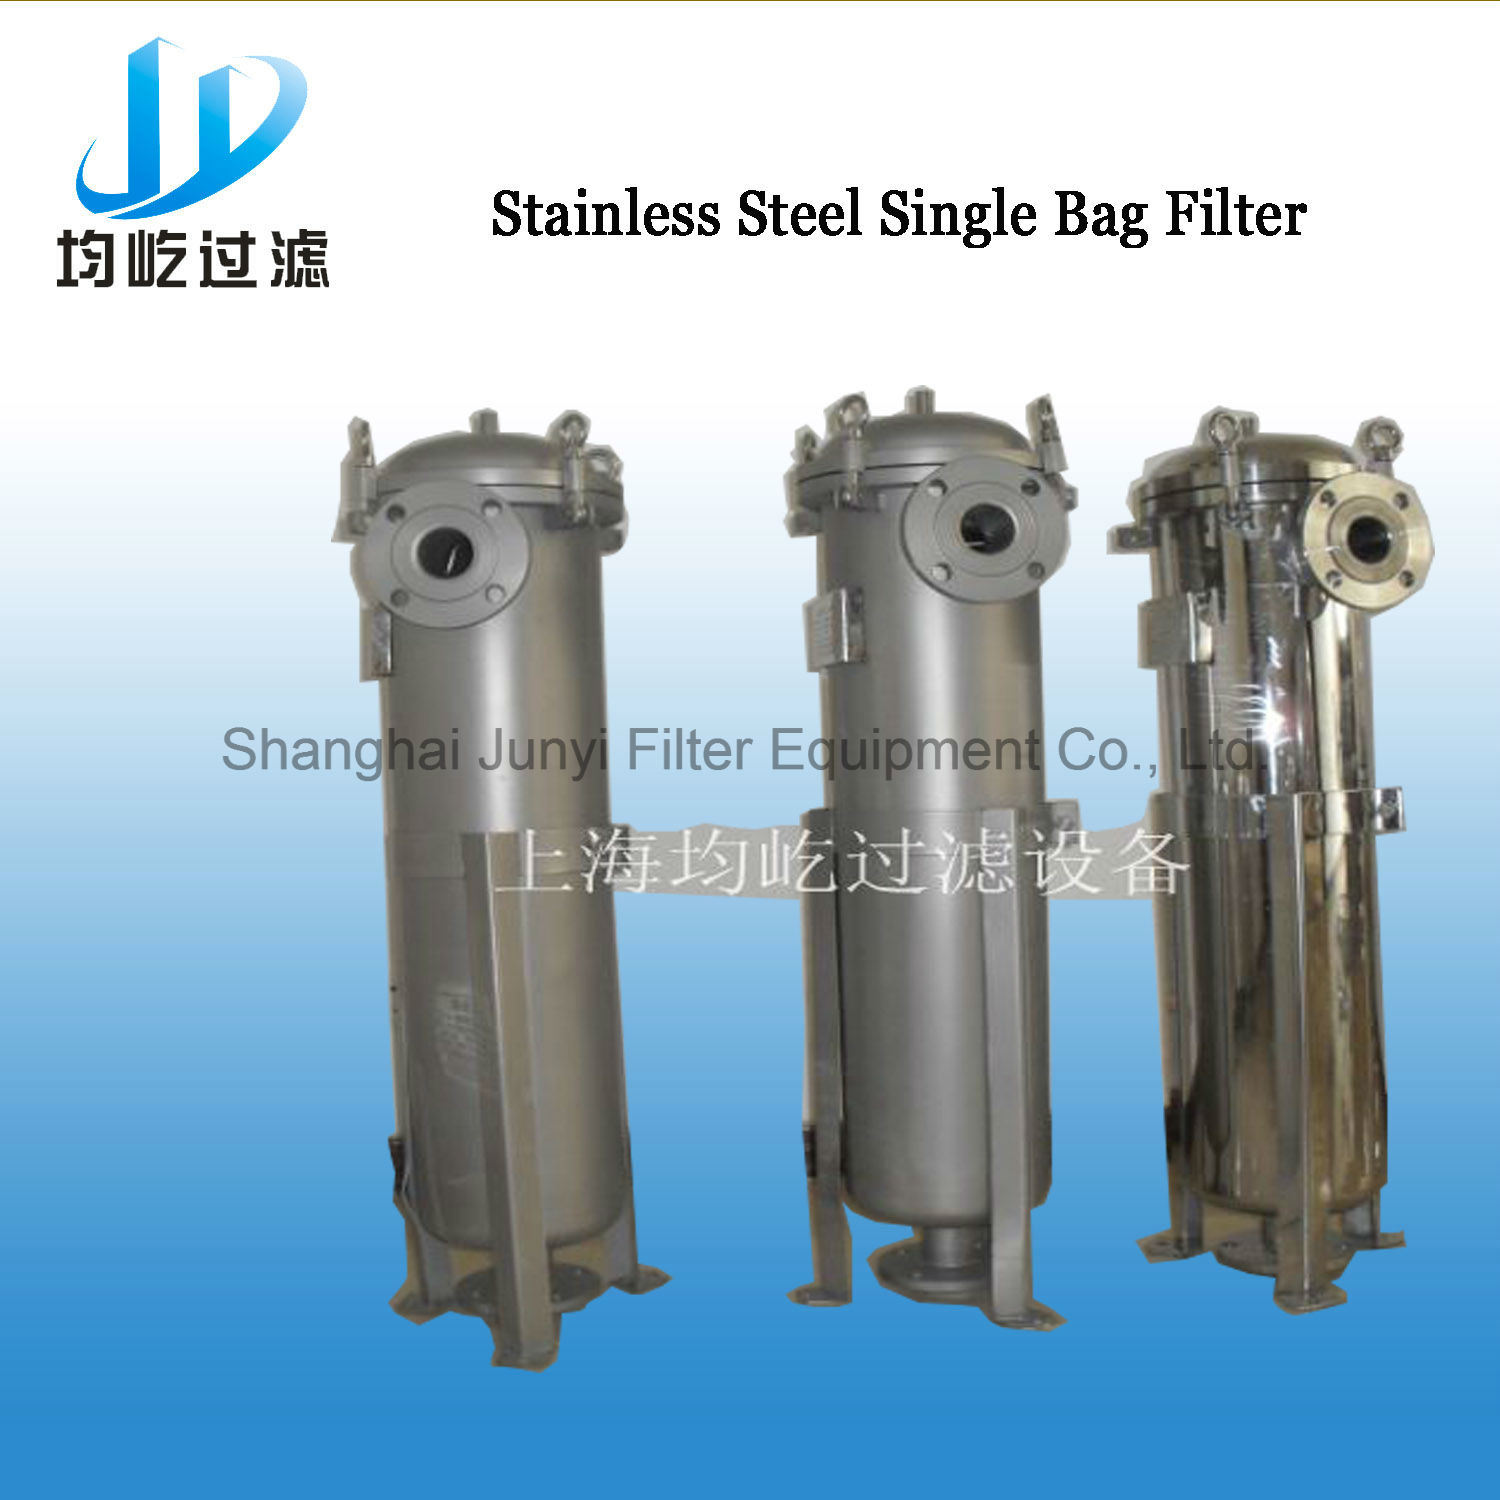 Stainless Steel Filter with #4 Filter Bag